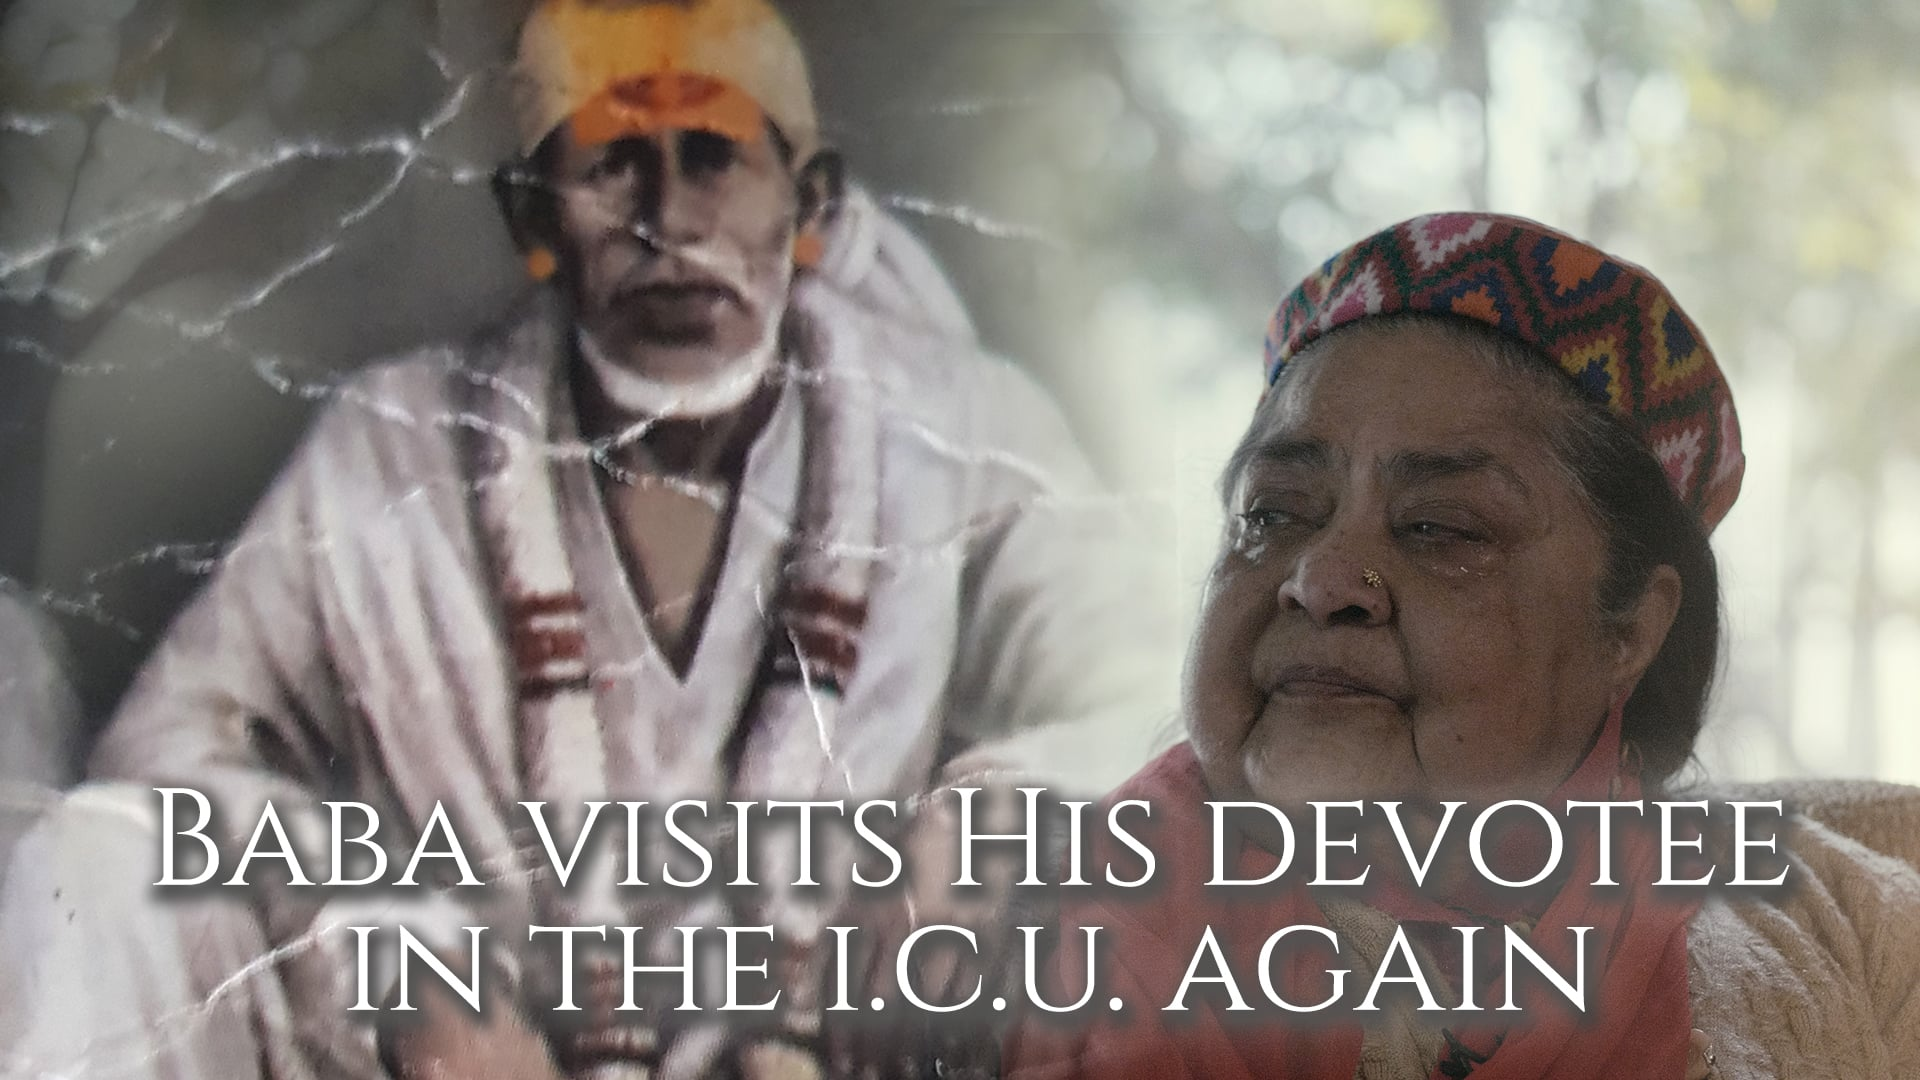 Baba visits His devotee in the ICU again